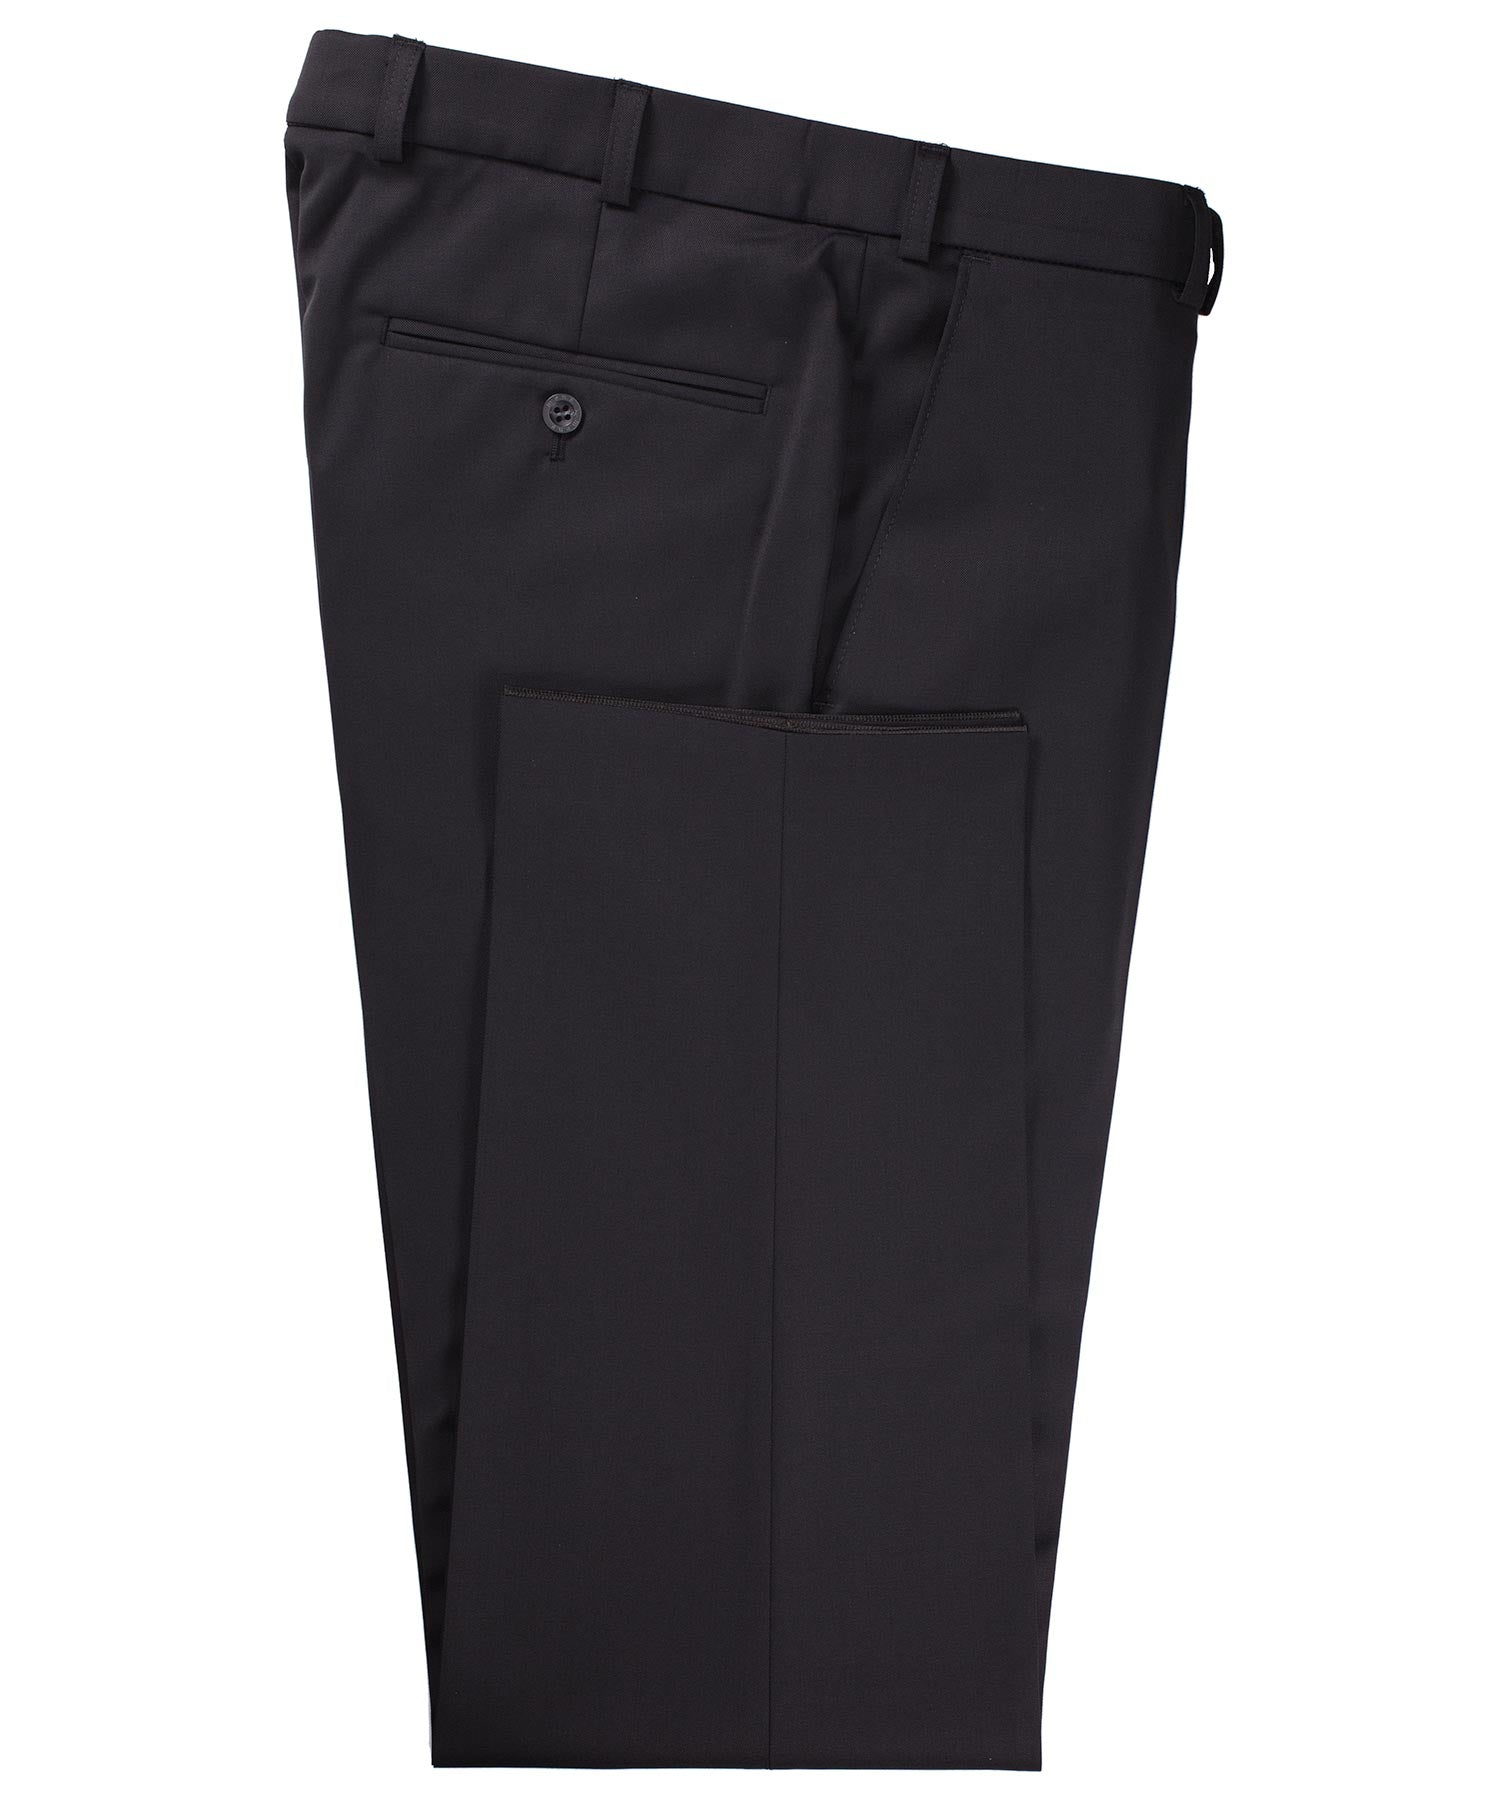 Madrid Black Dress Pants